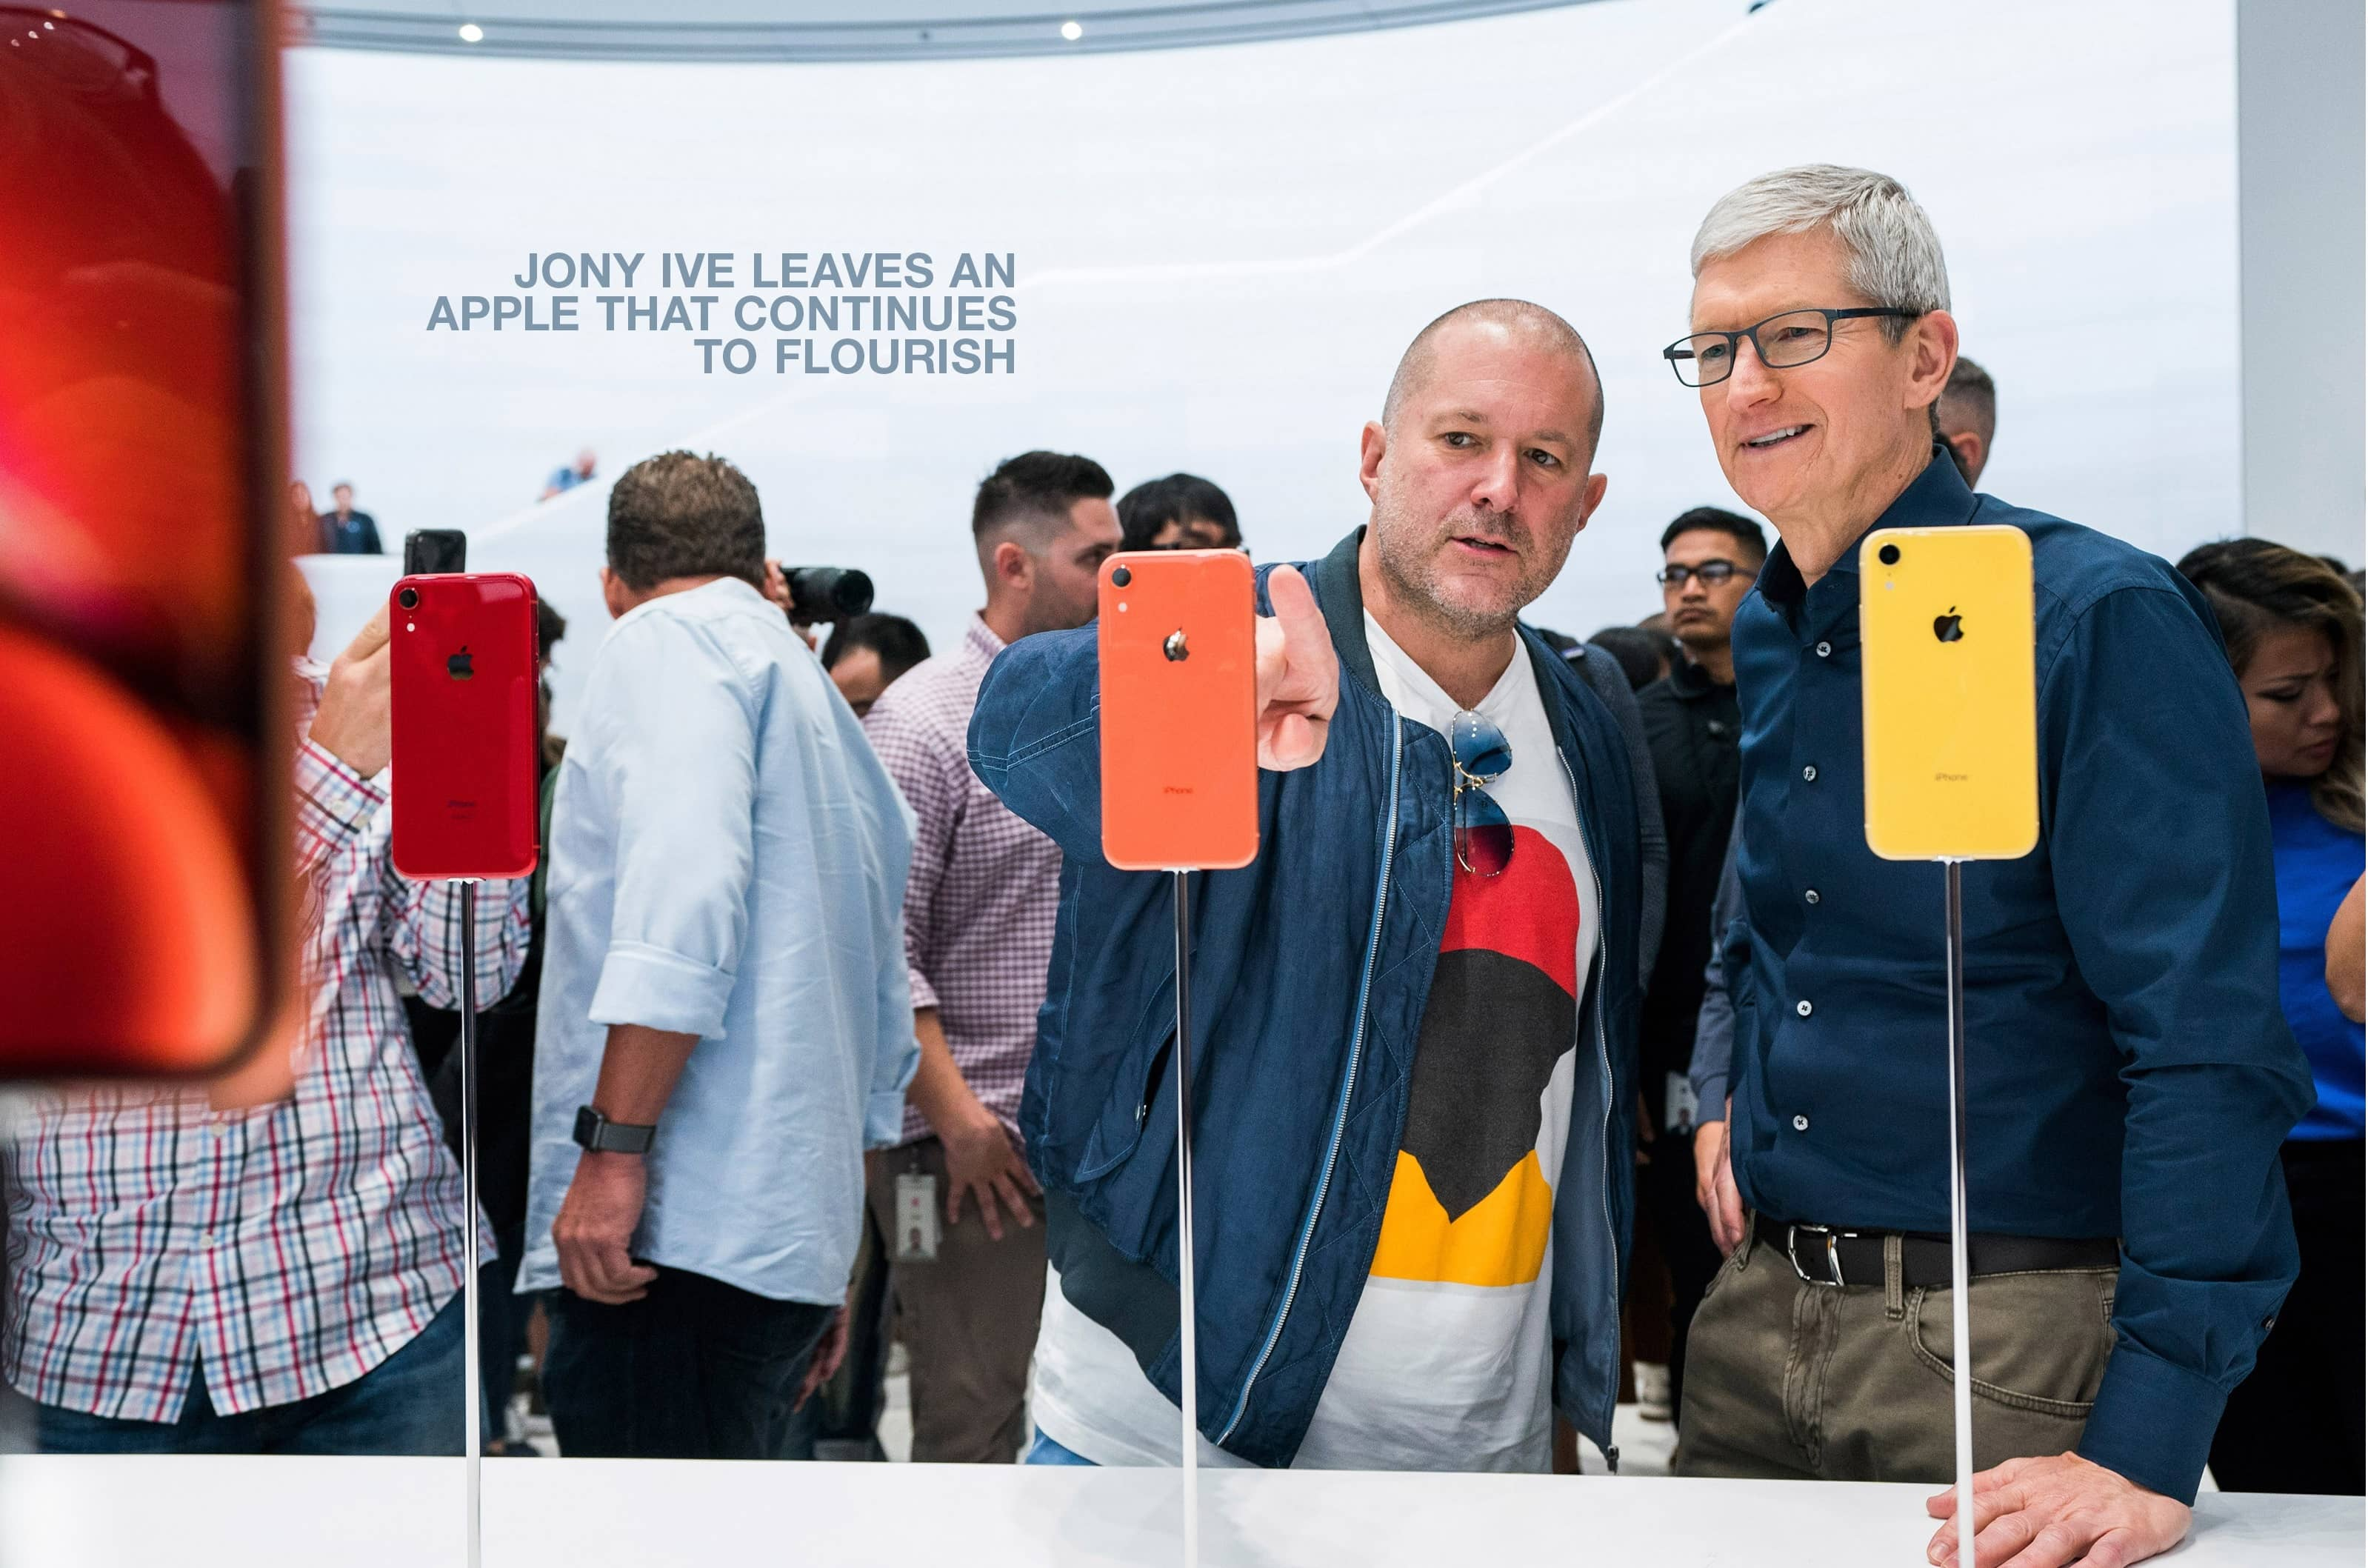 JONY IVE LEAVES AN APPLE THAT CONTINUES TO FLOURISH